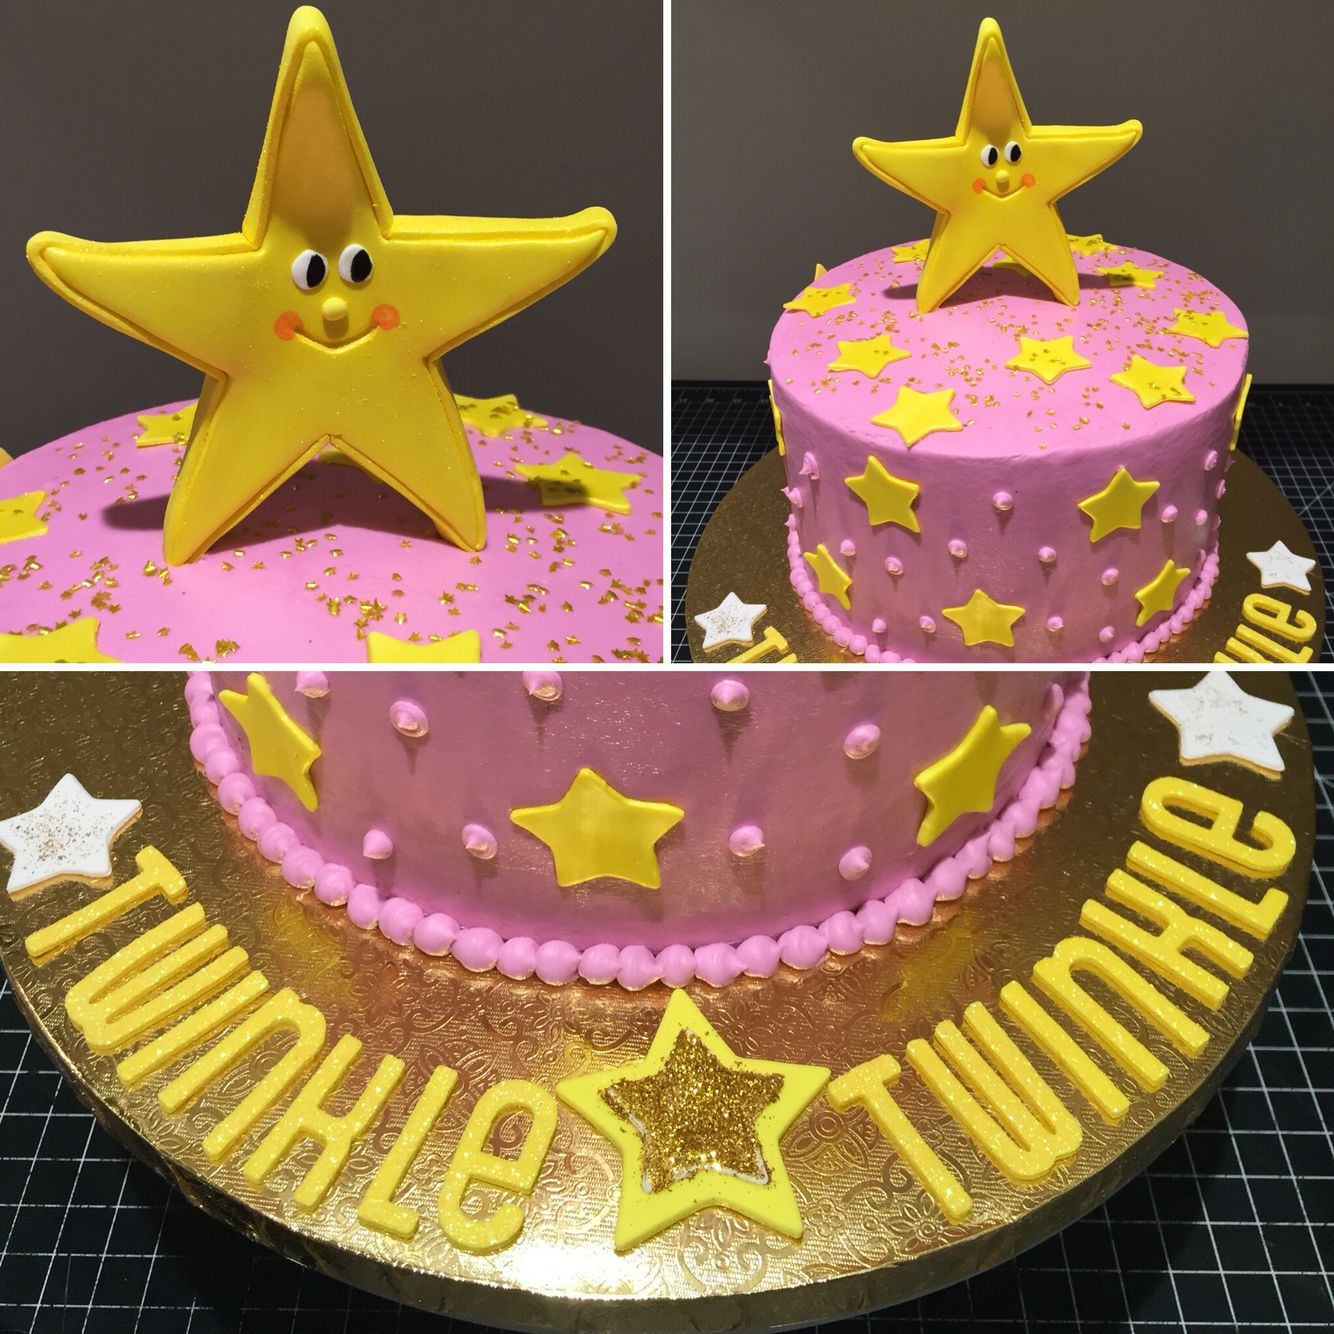 Twinkle Twinkle Little Star birthday cake for Zaras 4th Birthday